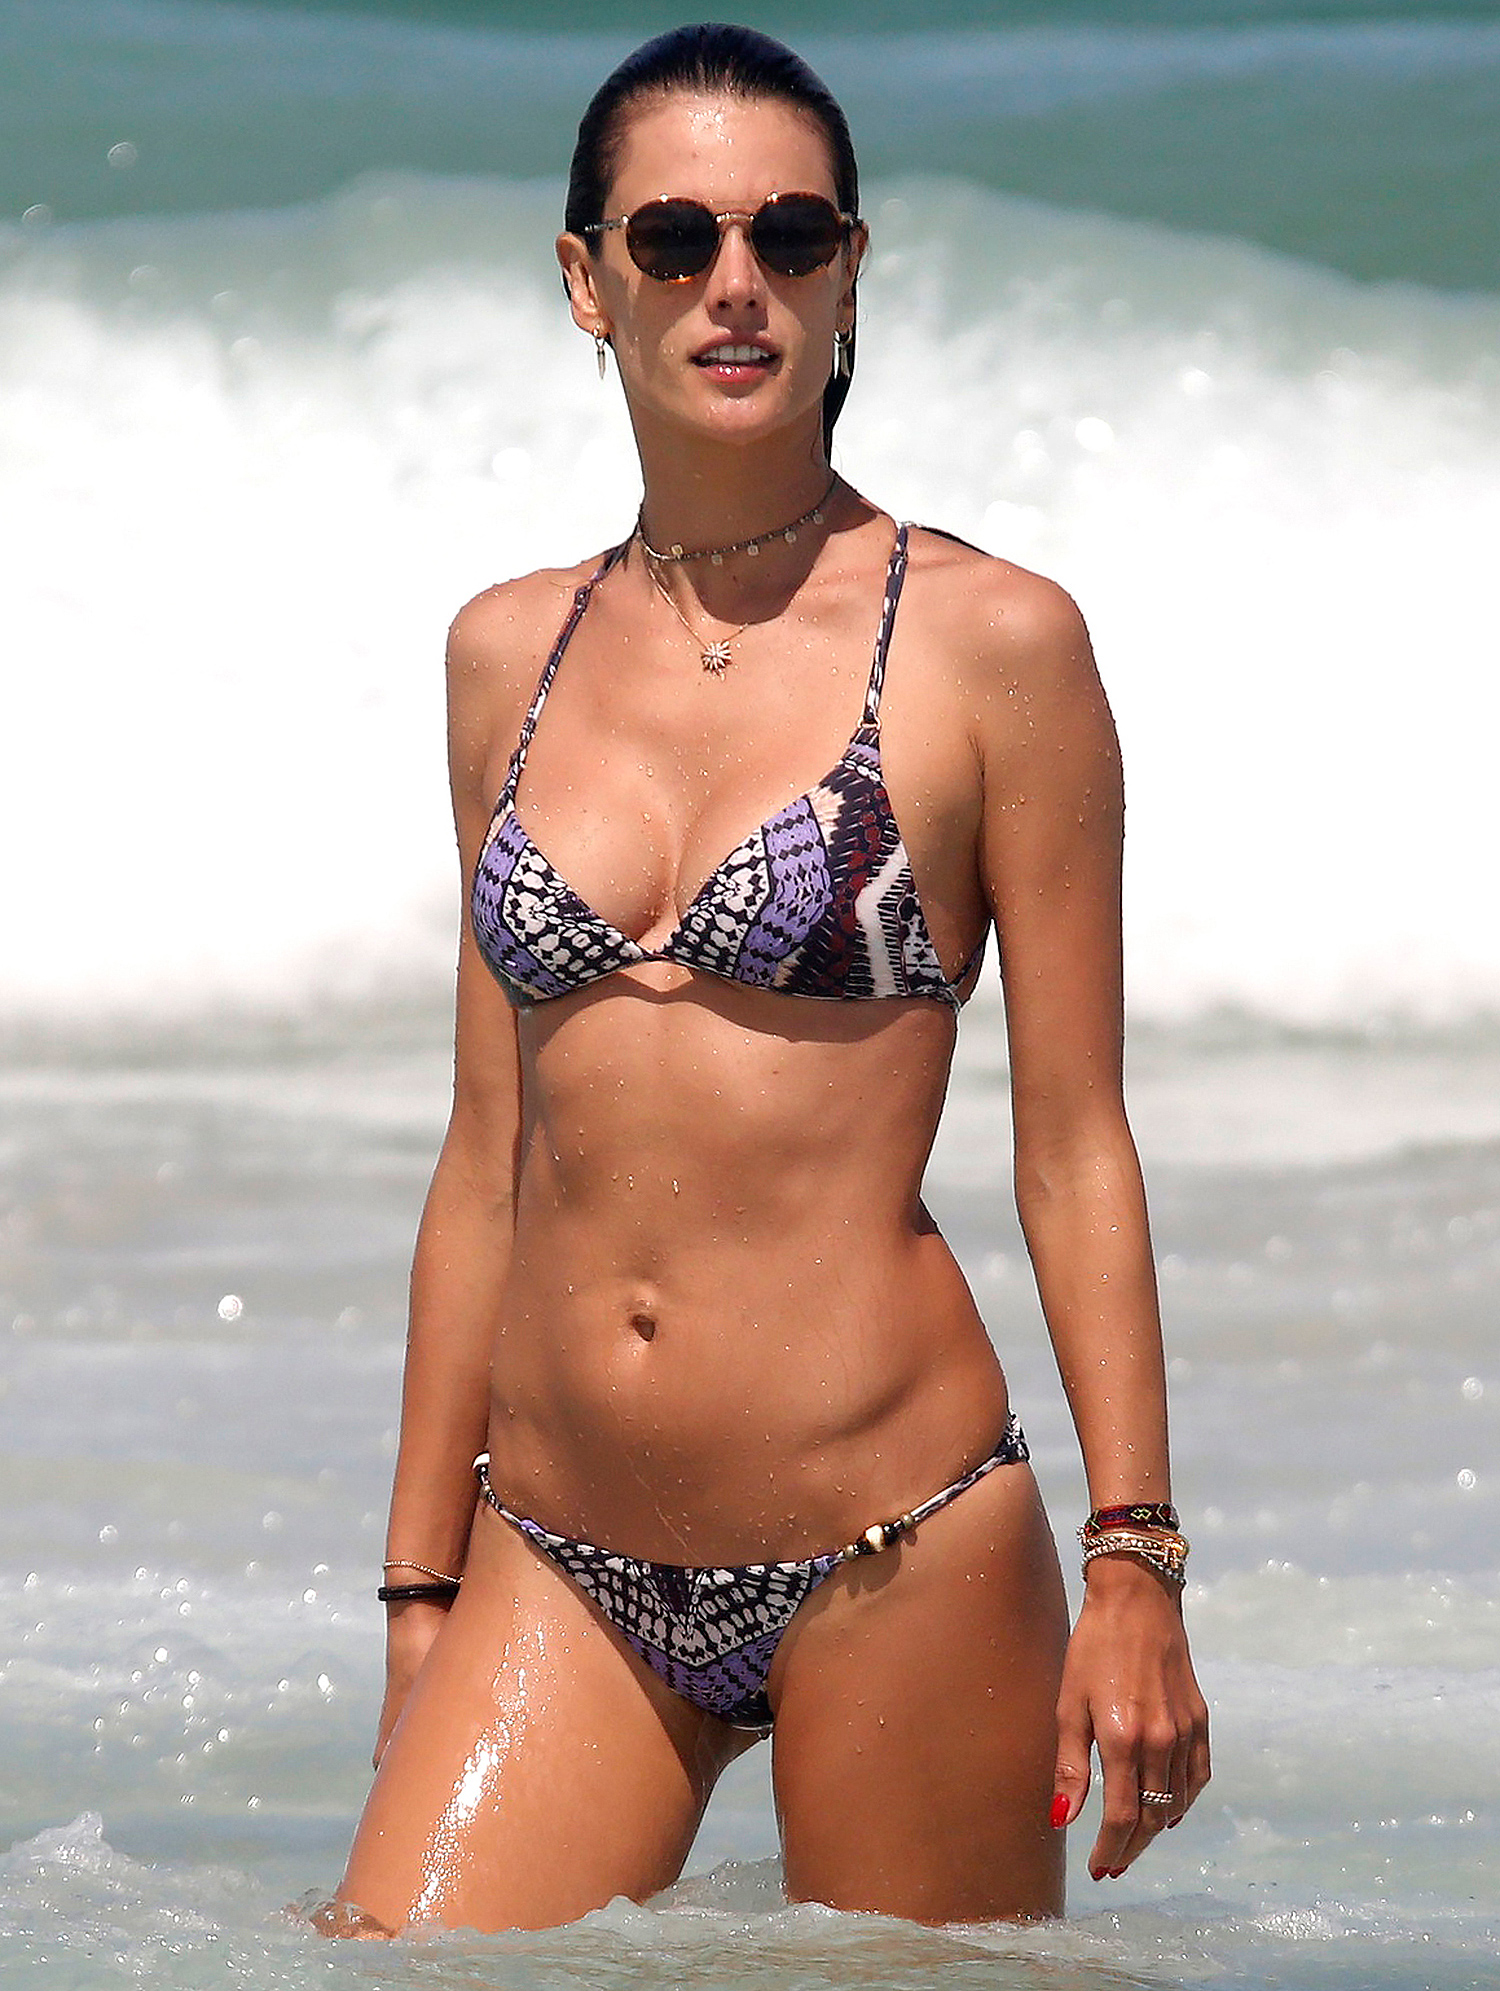 *EXCLUSIVE* Alessandra Ambrosio shows off her incredibly fit beach bod